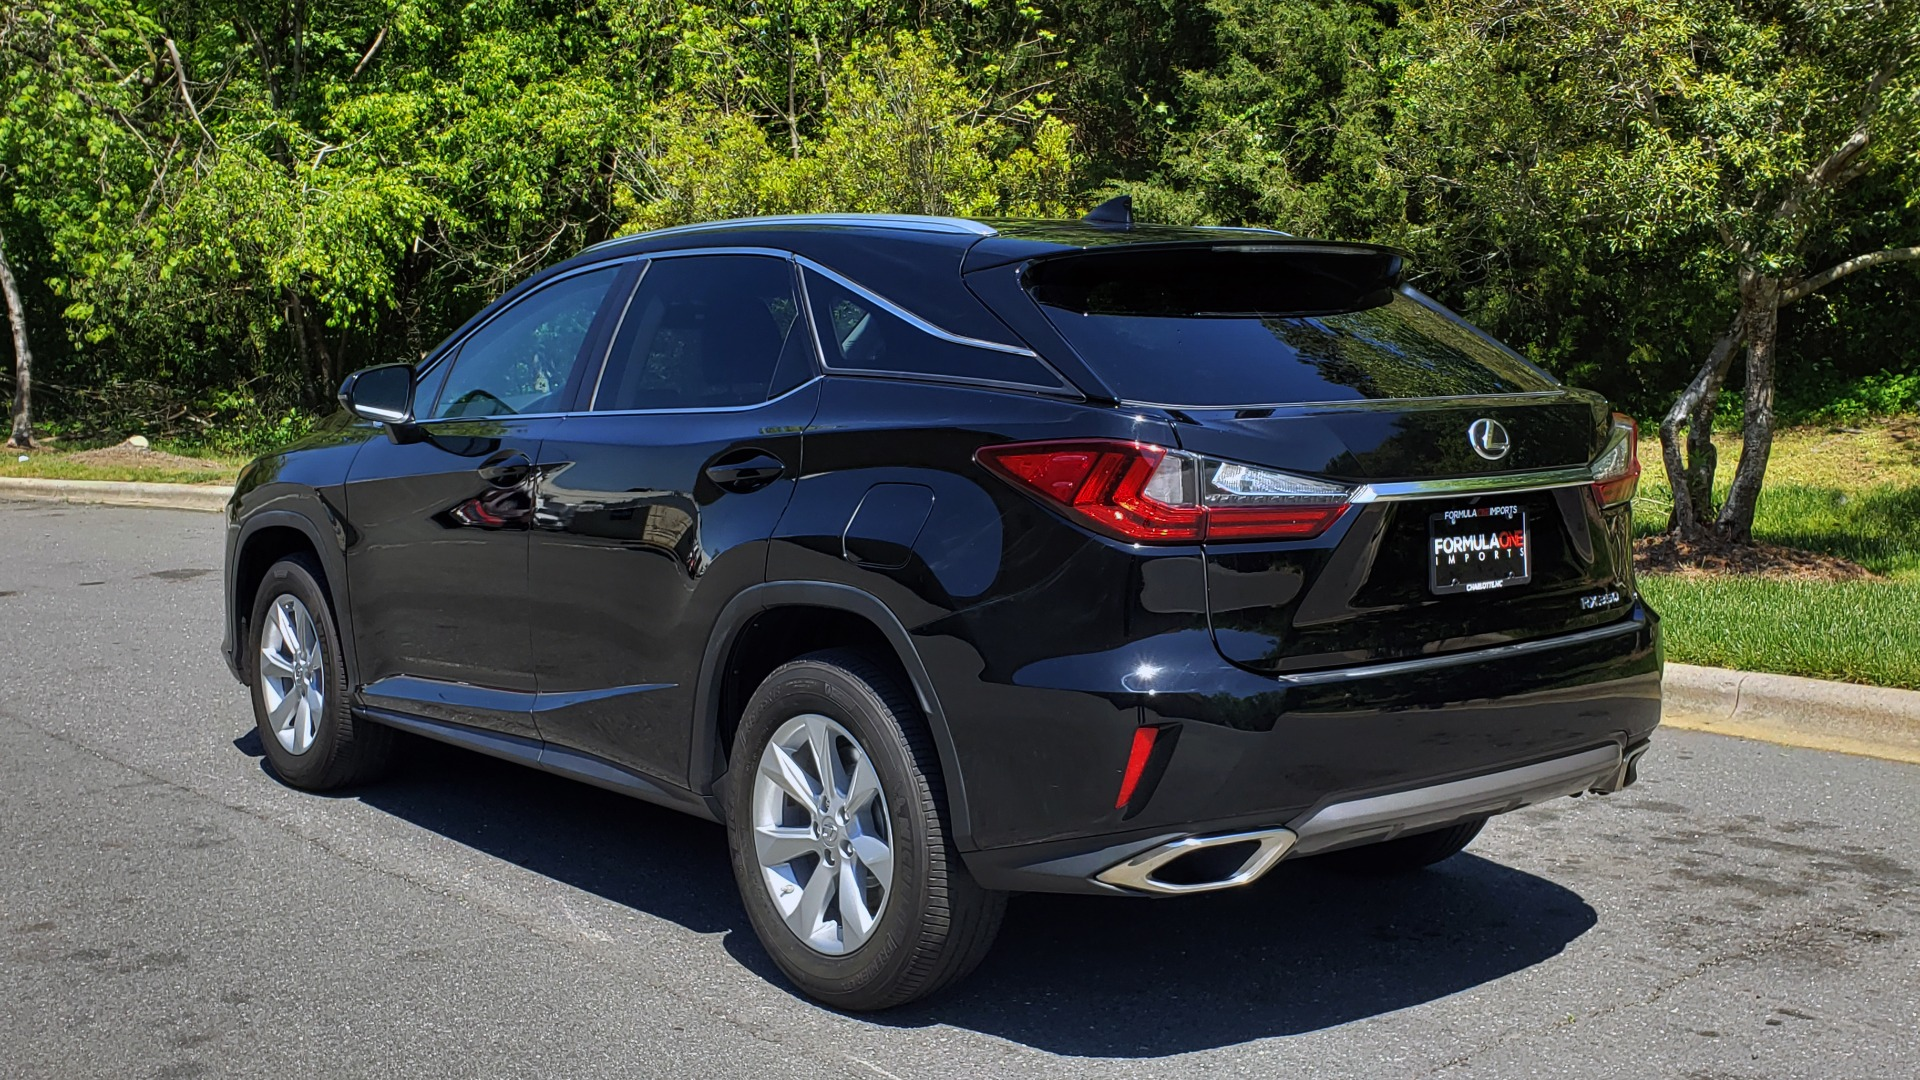 Used 2016 Lexus RX 350 PREMIUM / AWD / VENT SEATS / SUNROOF / BSM for sale Sold at Formula Imports in Charlotte NC 28227 3